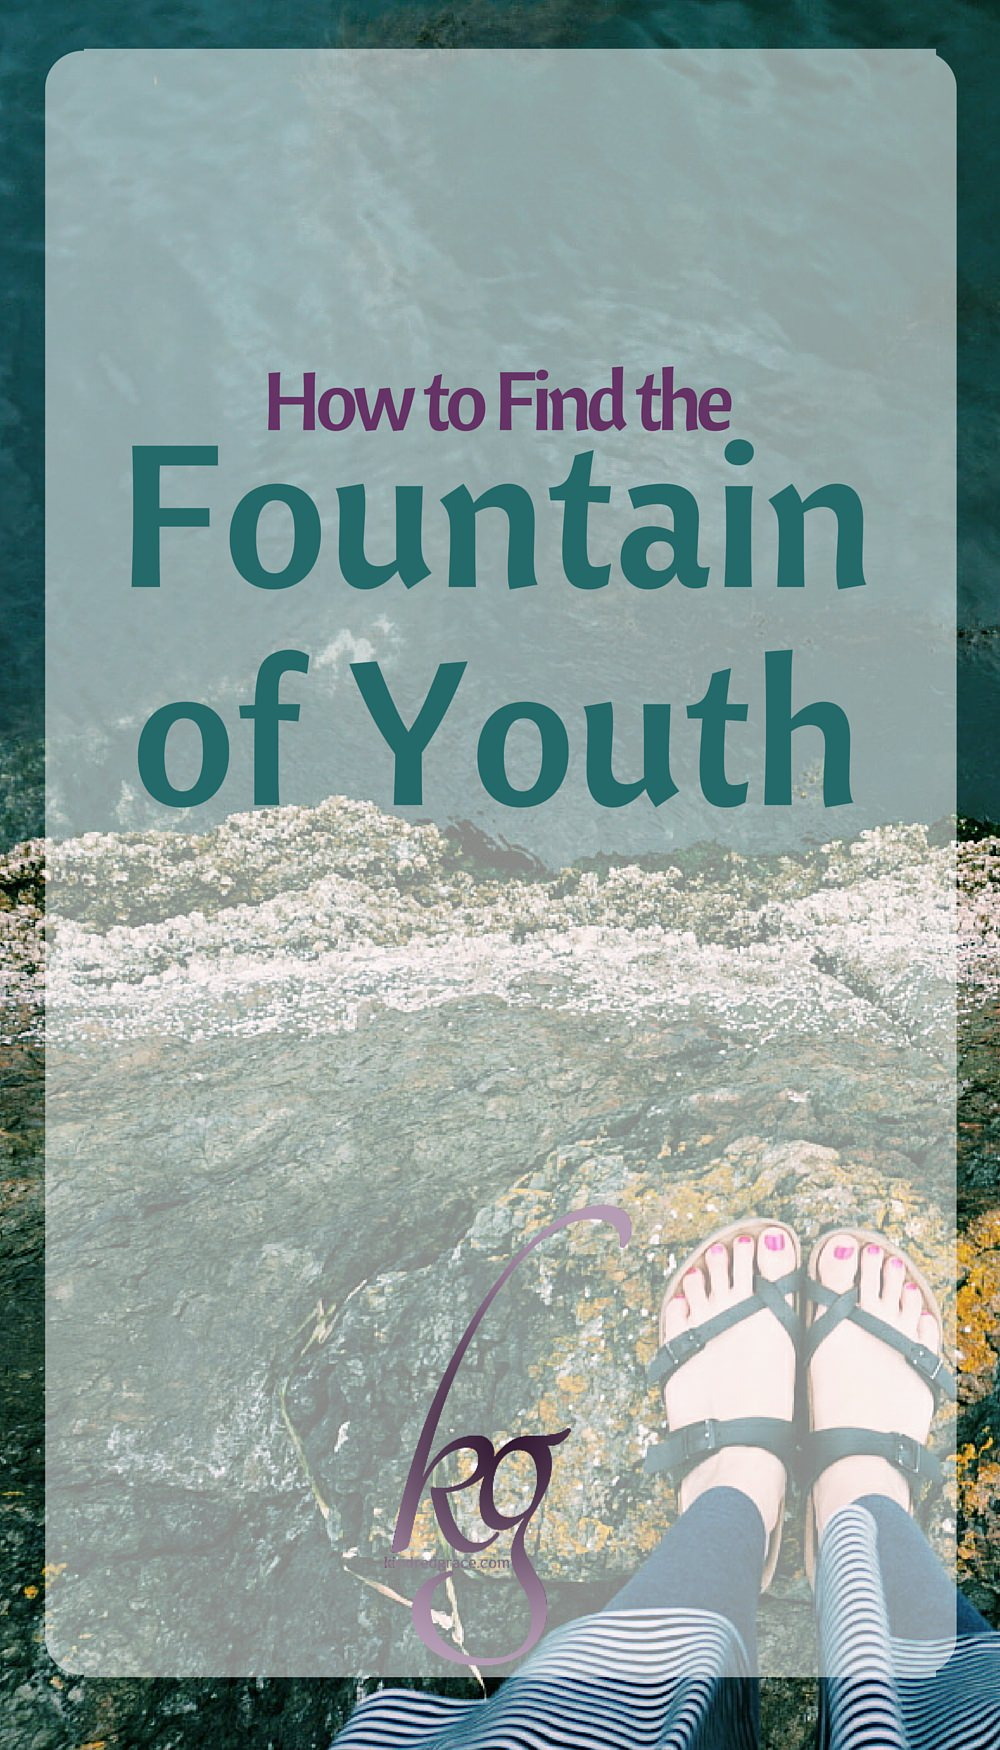 If my Grandma was any indication, then the true fountain of youth can be found in that unfettered love of Jesus. via @KindredGrace